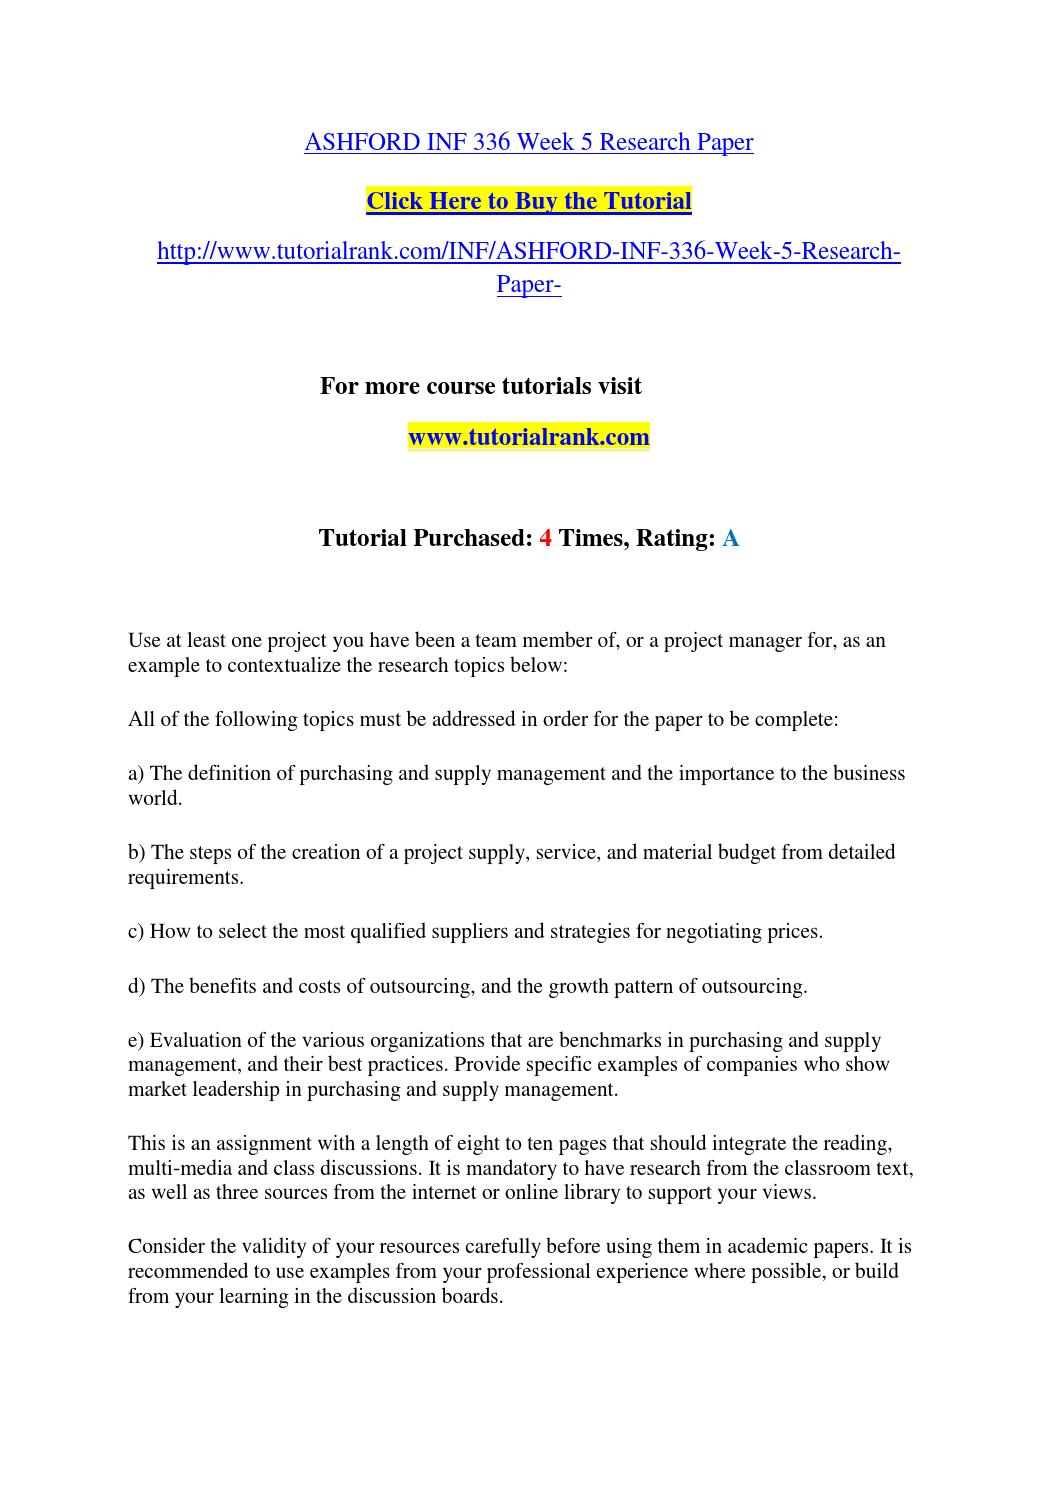 018 Research Paper Business Management Topics For Page 1 Unusual Techniques Pdf Full